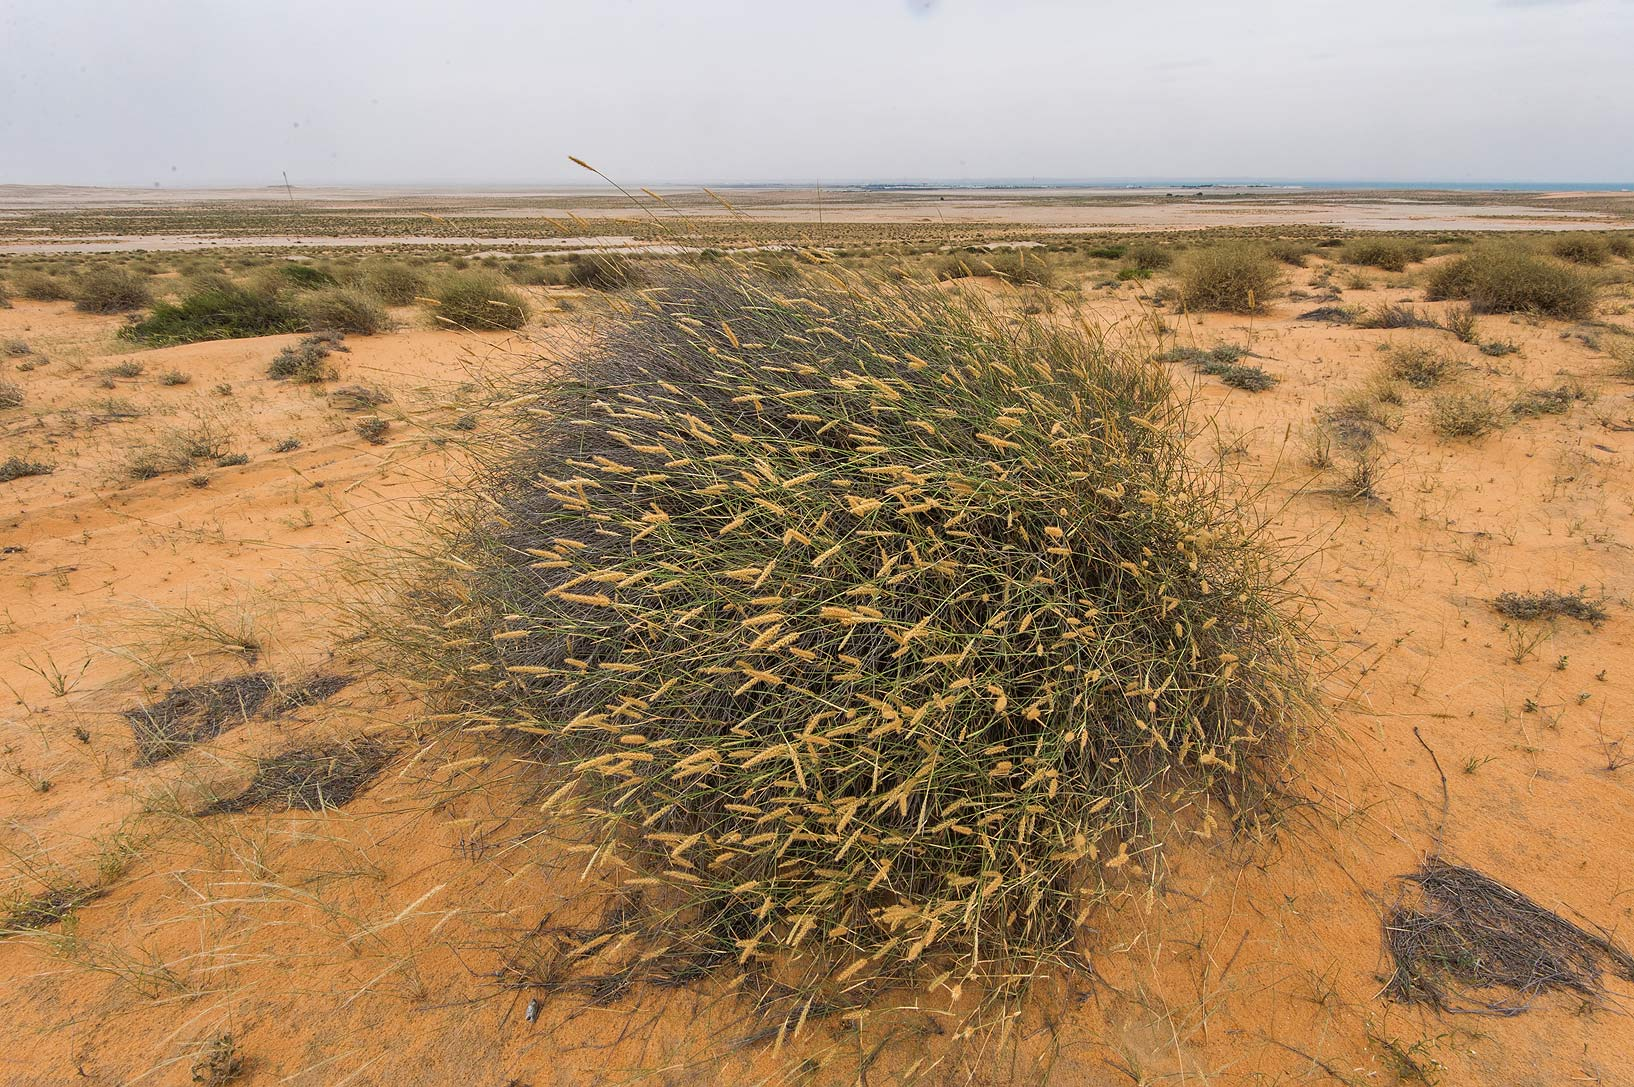 Clump of grass Pennisetum divisum on sand dunes...Reserve near Abu Samra. Southern Qatar